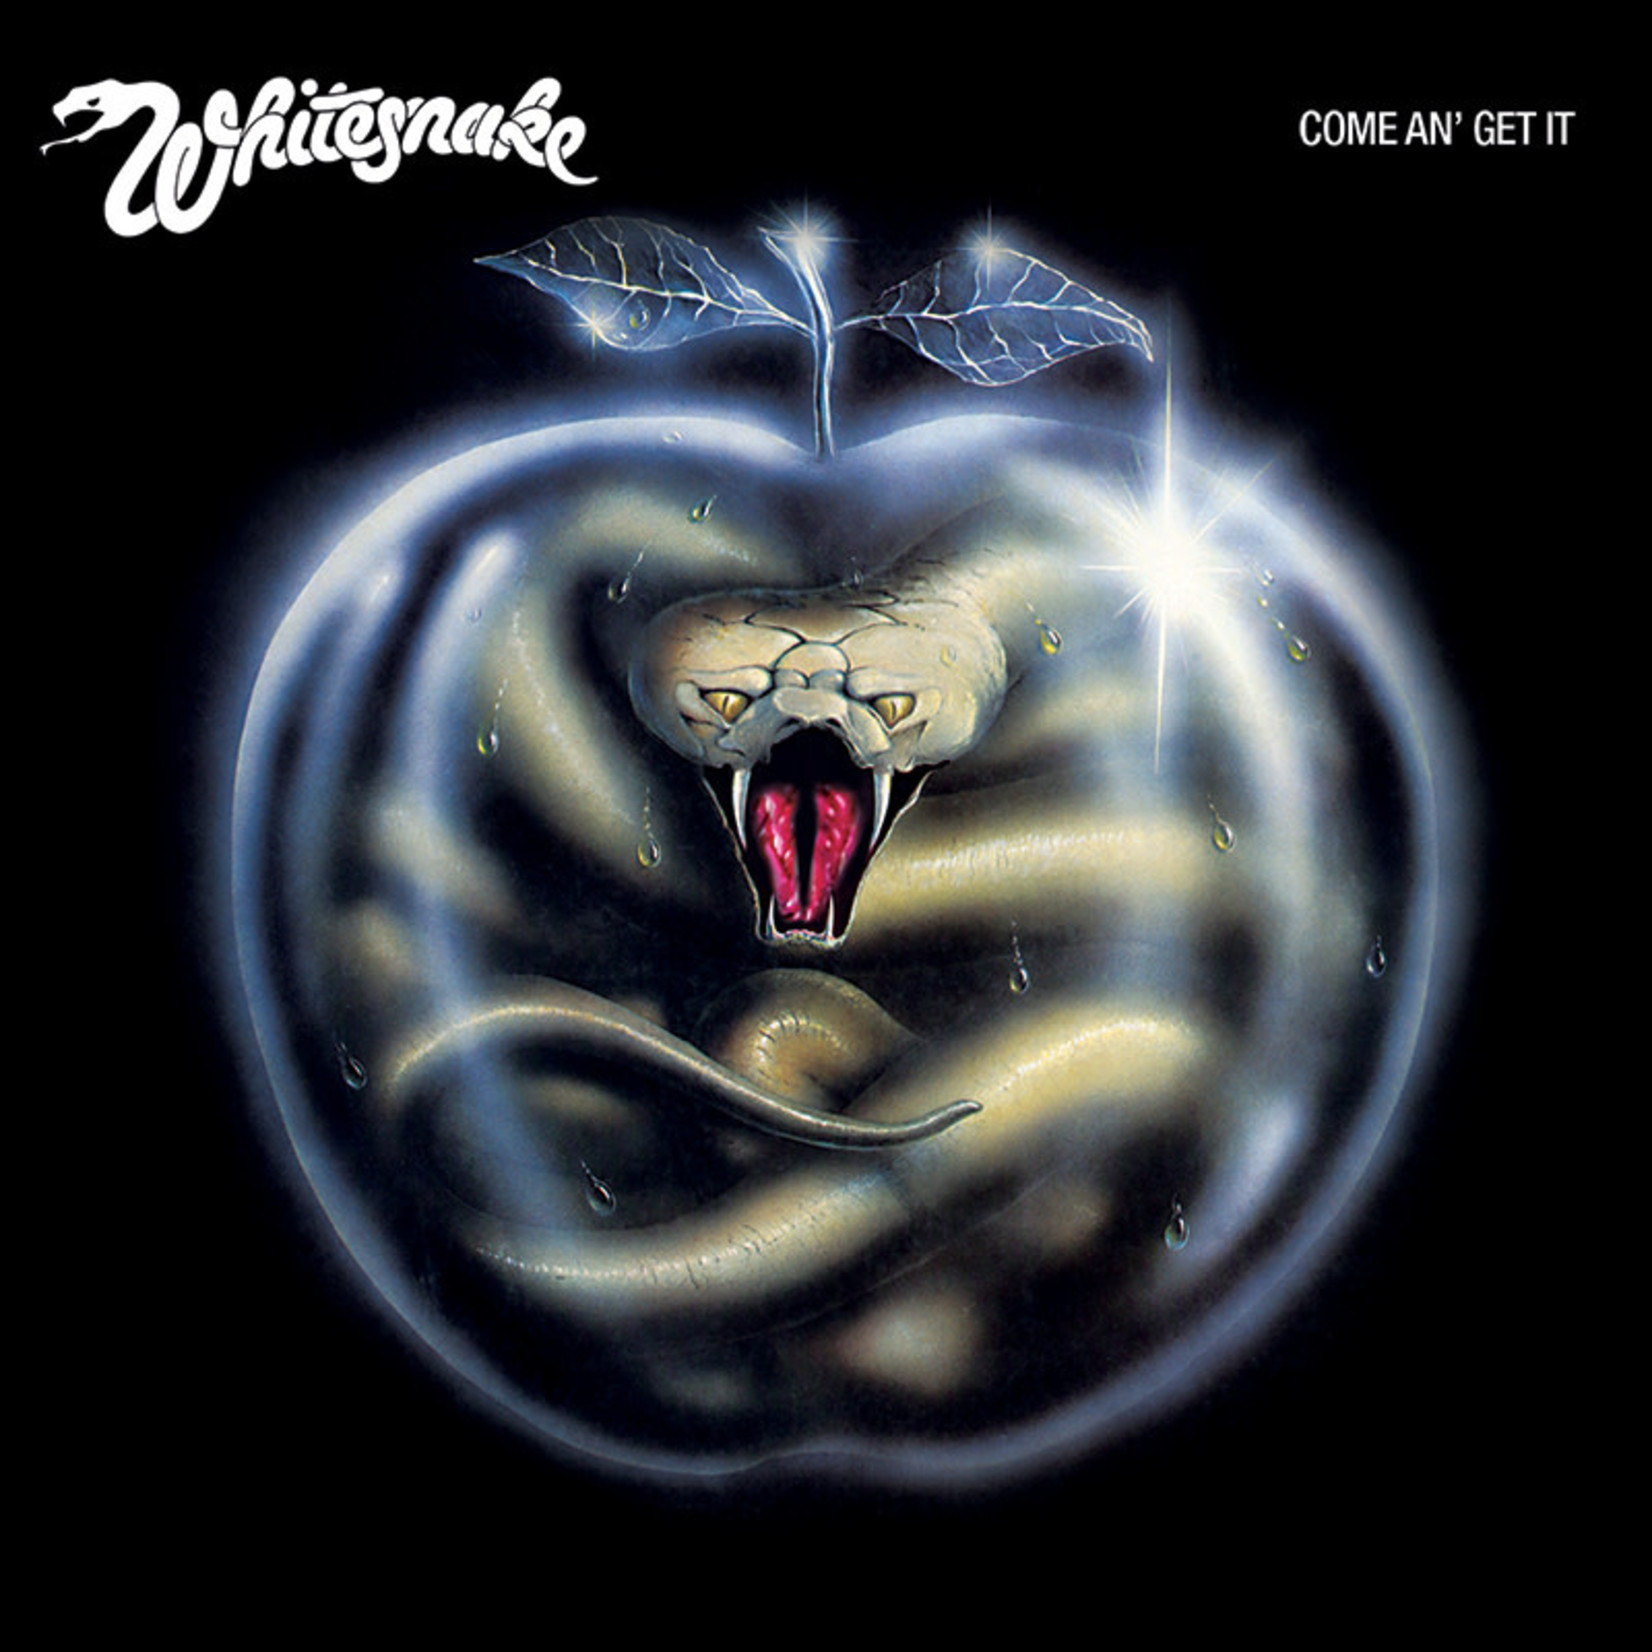 WHITESNAKE COME AN' GET IT (CLEAR WITH METALLIC BLUE & GREEN SWIRL VINYL 180G)